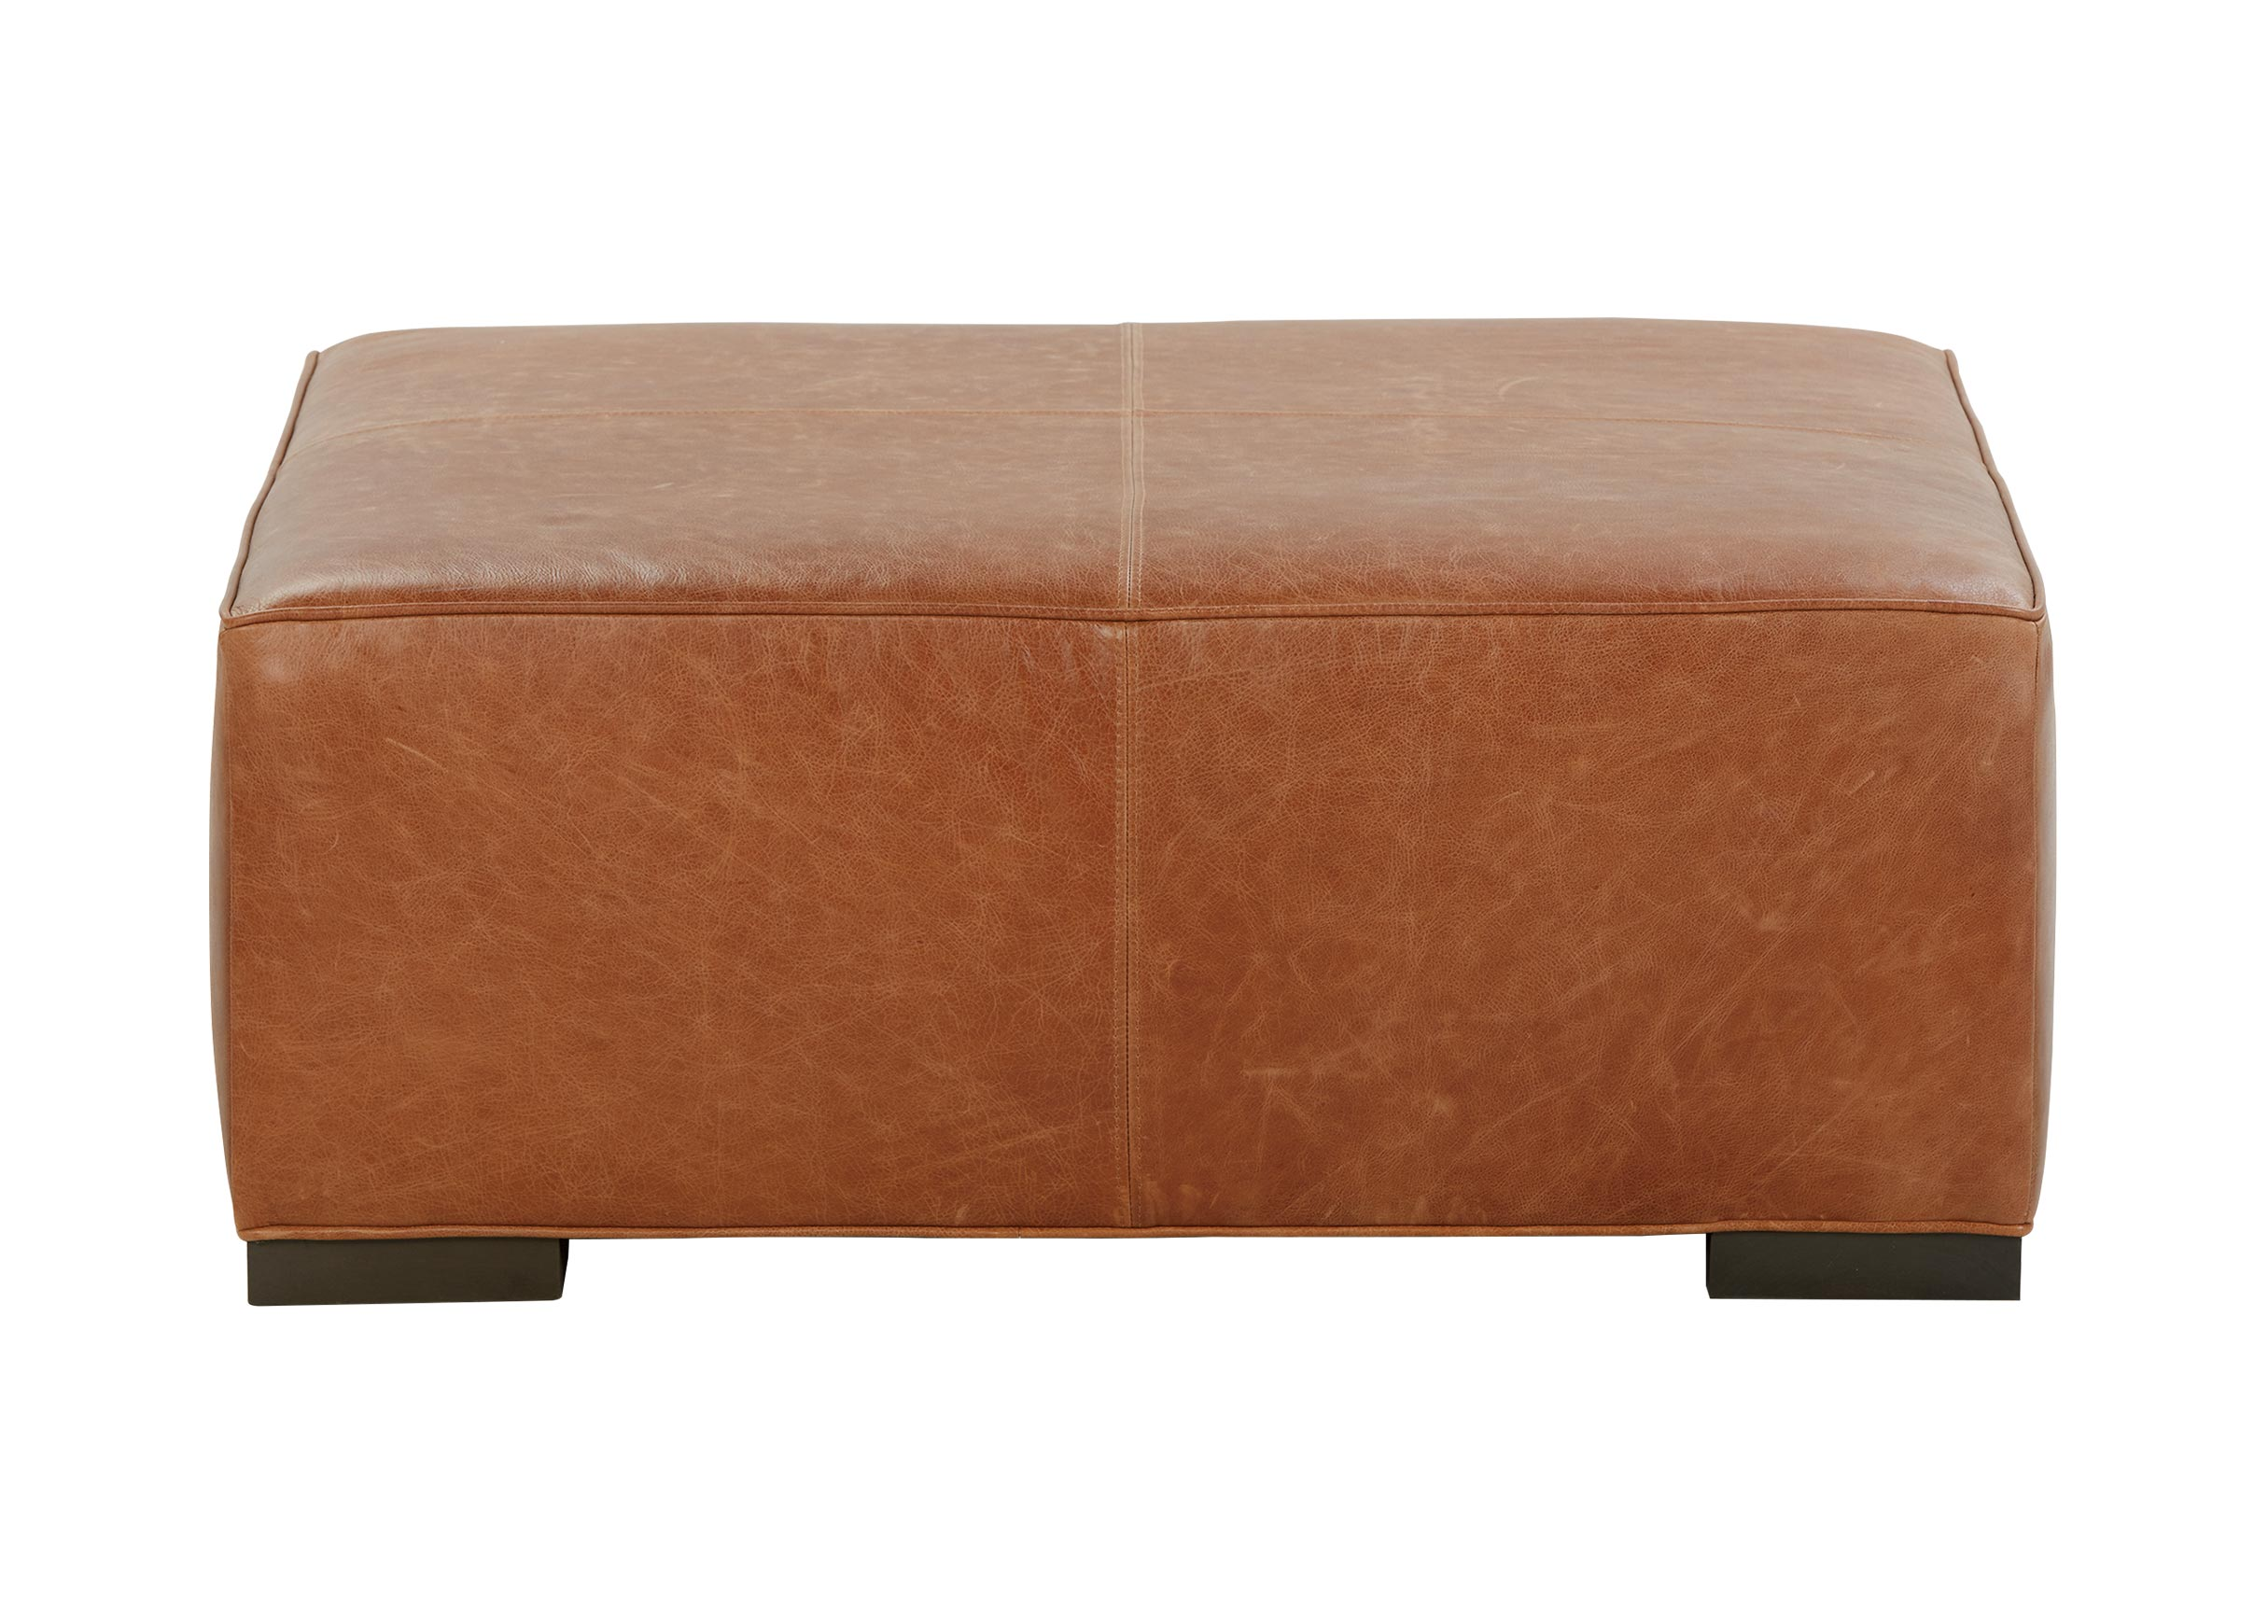 shalimar cocoa spectra home leather products w tufted lucerne cocktail ottoman